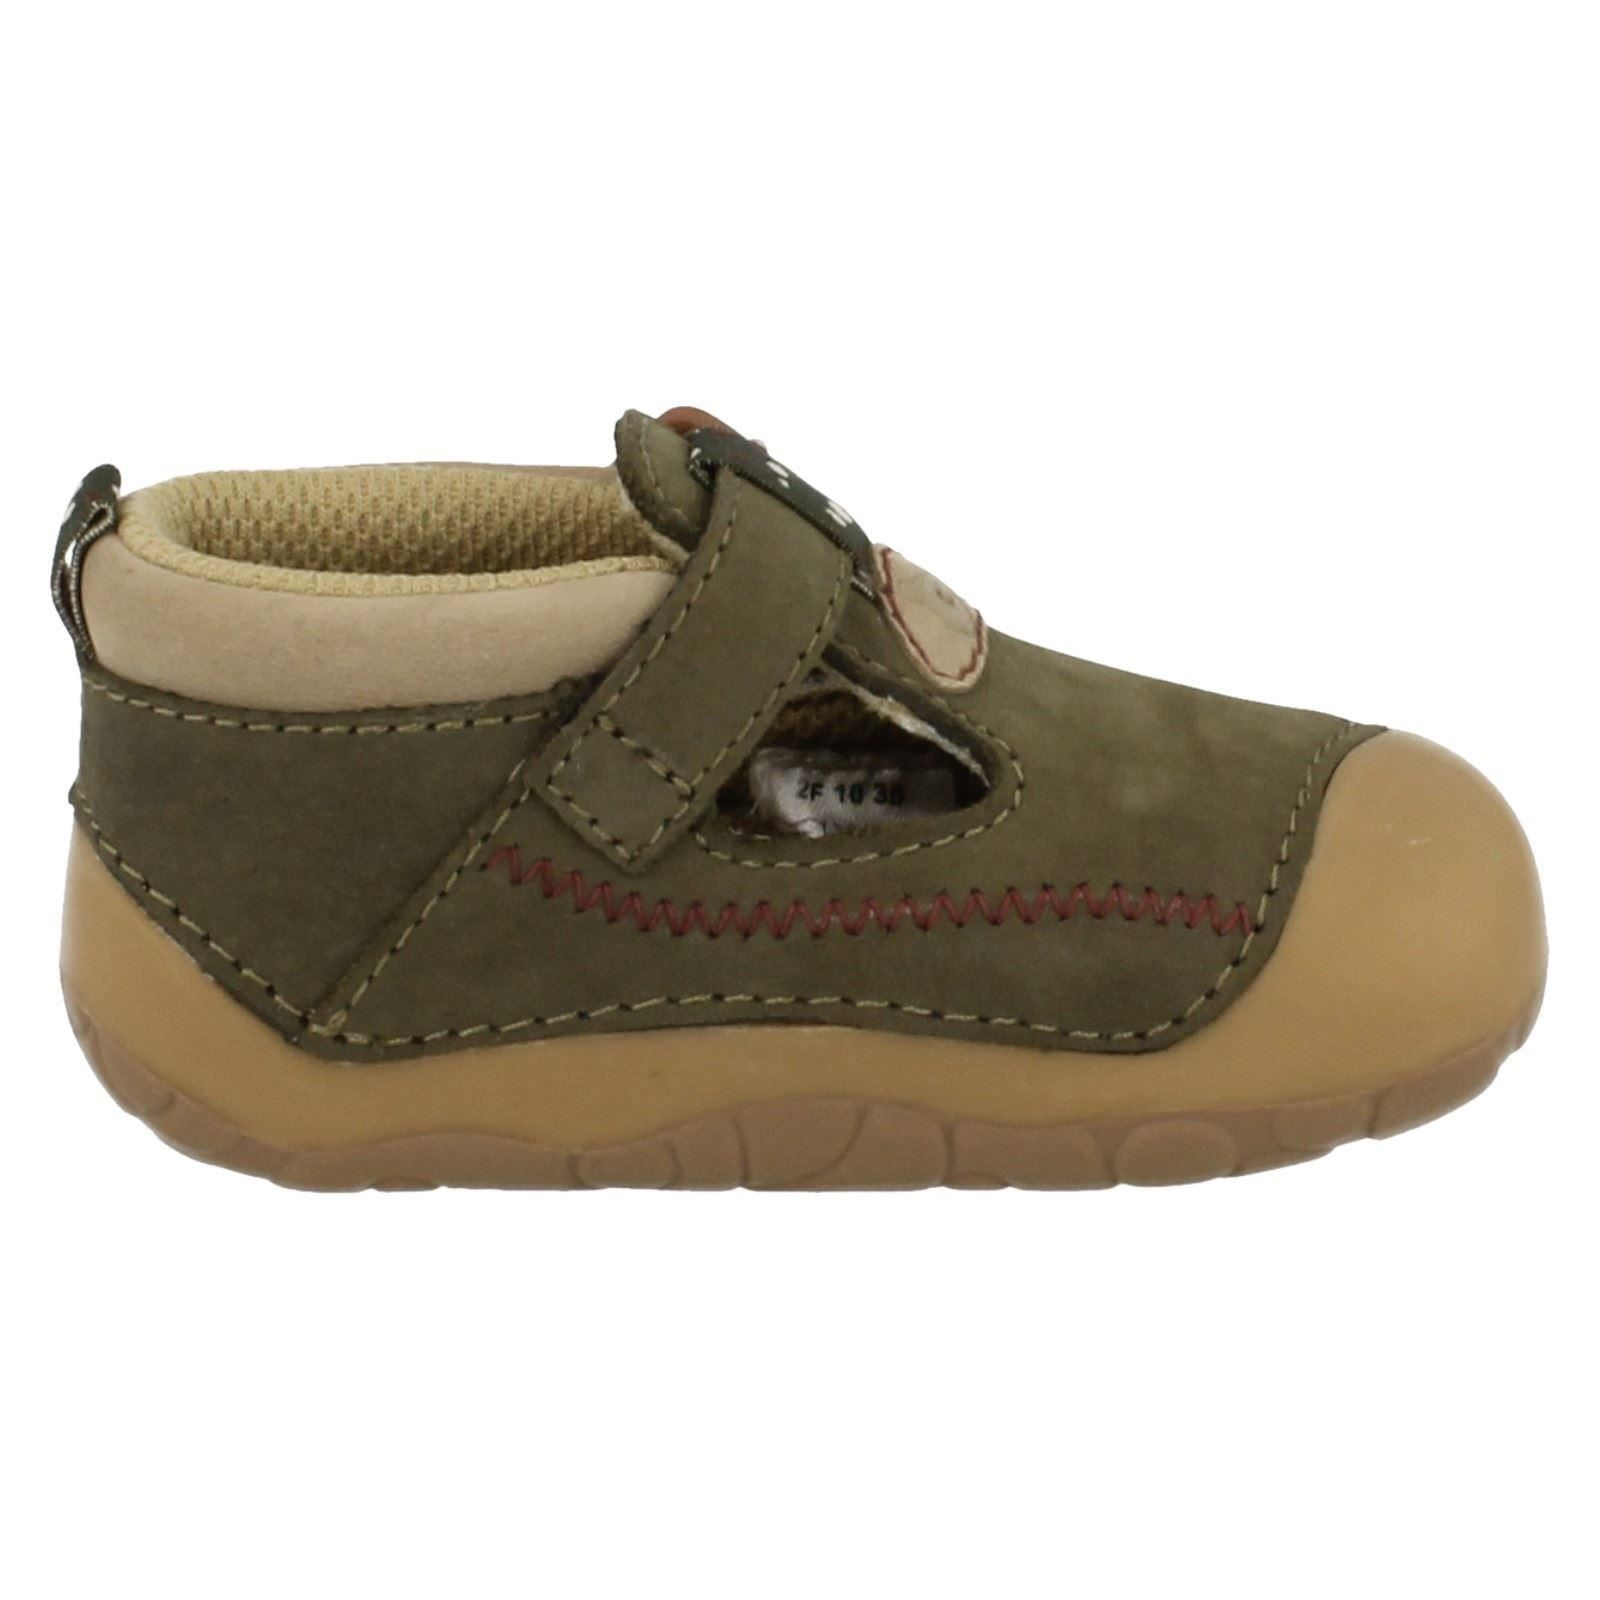 'Infant Boys Startrite' Rounded Toe Casual Pre-Walker Shoes - Tiny